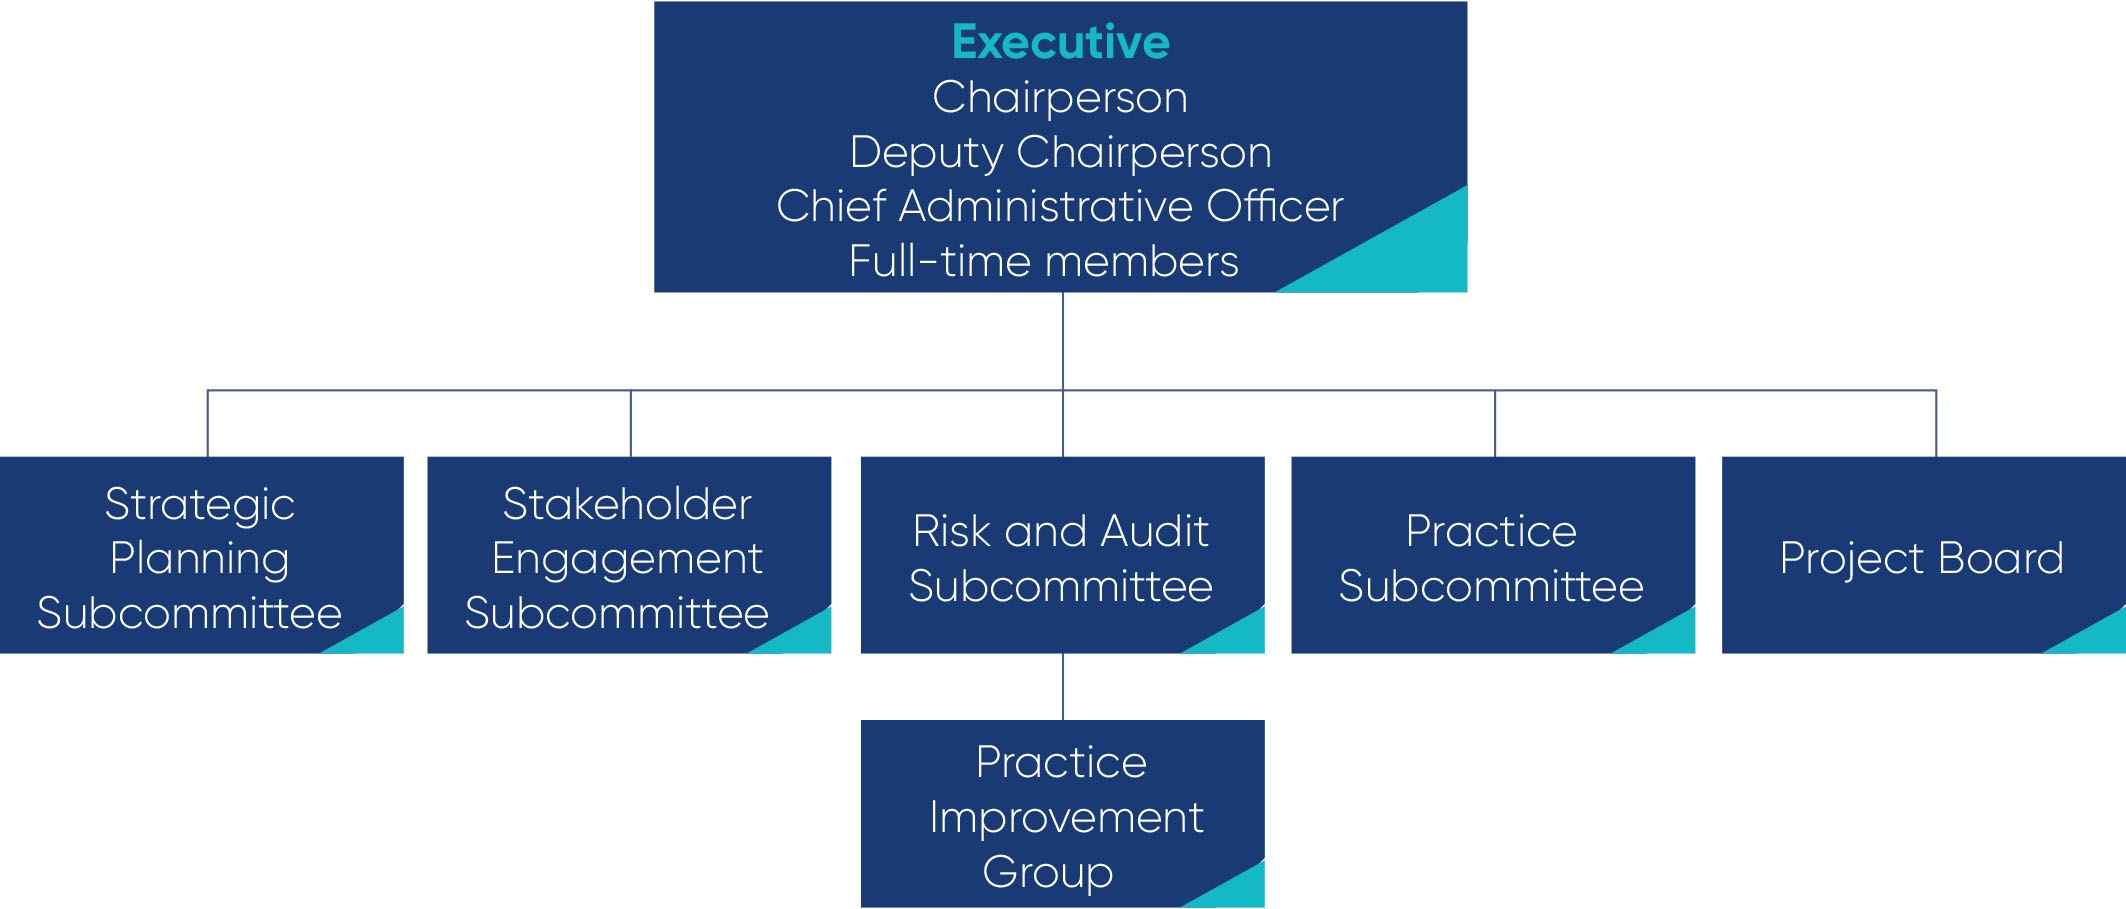 This is the Board's governance structure.